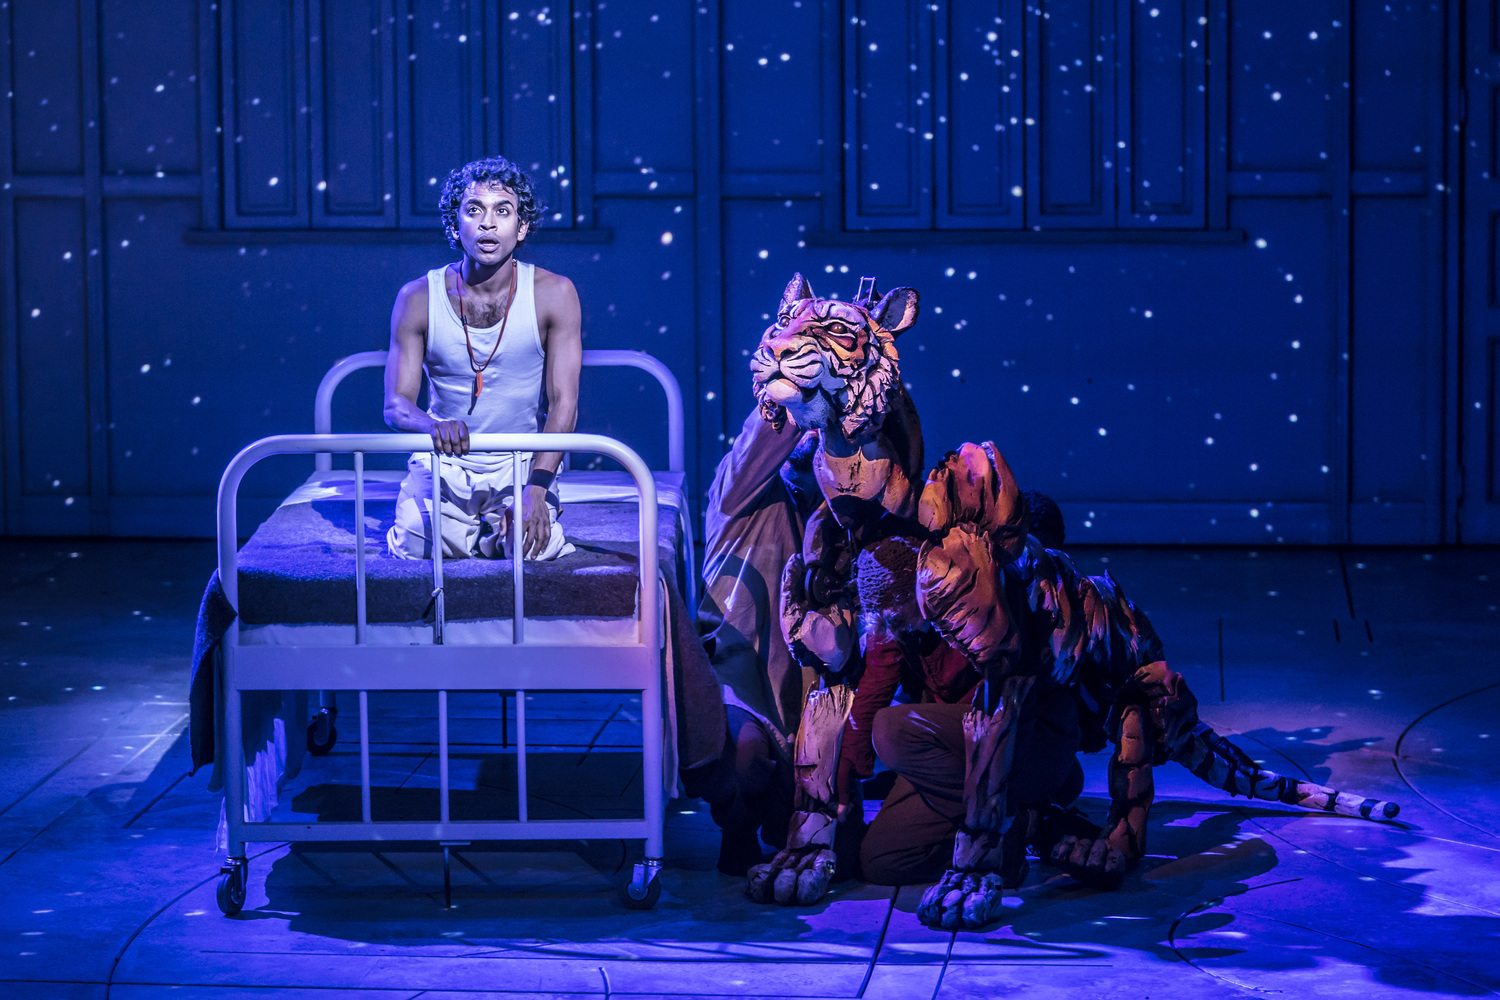 BWW Review: LIFE OF PI, Crucible, Sheffield